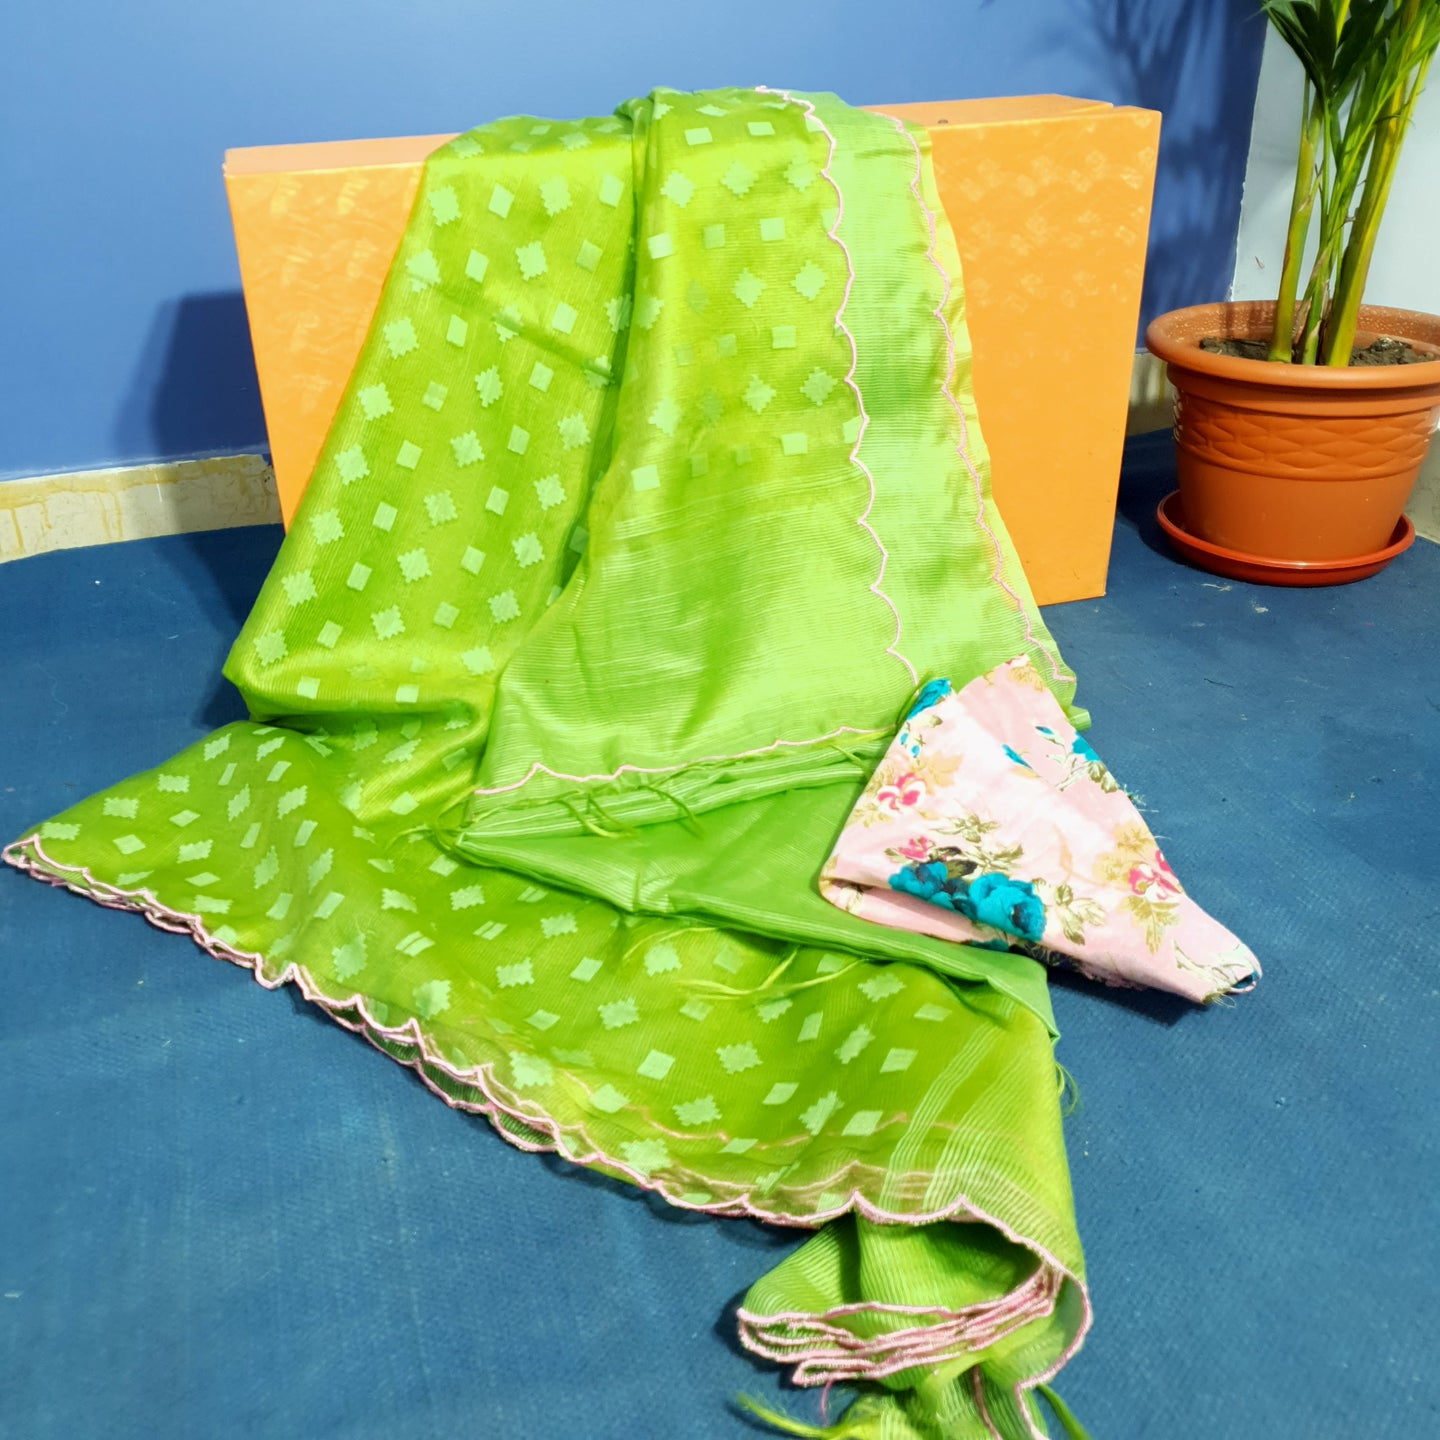 Handwoven Chartreuse Green Resham Sari With Scalloped Border